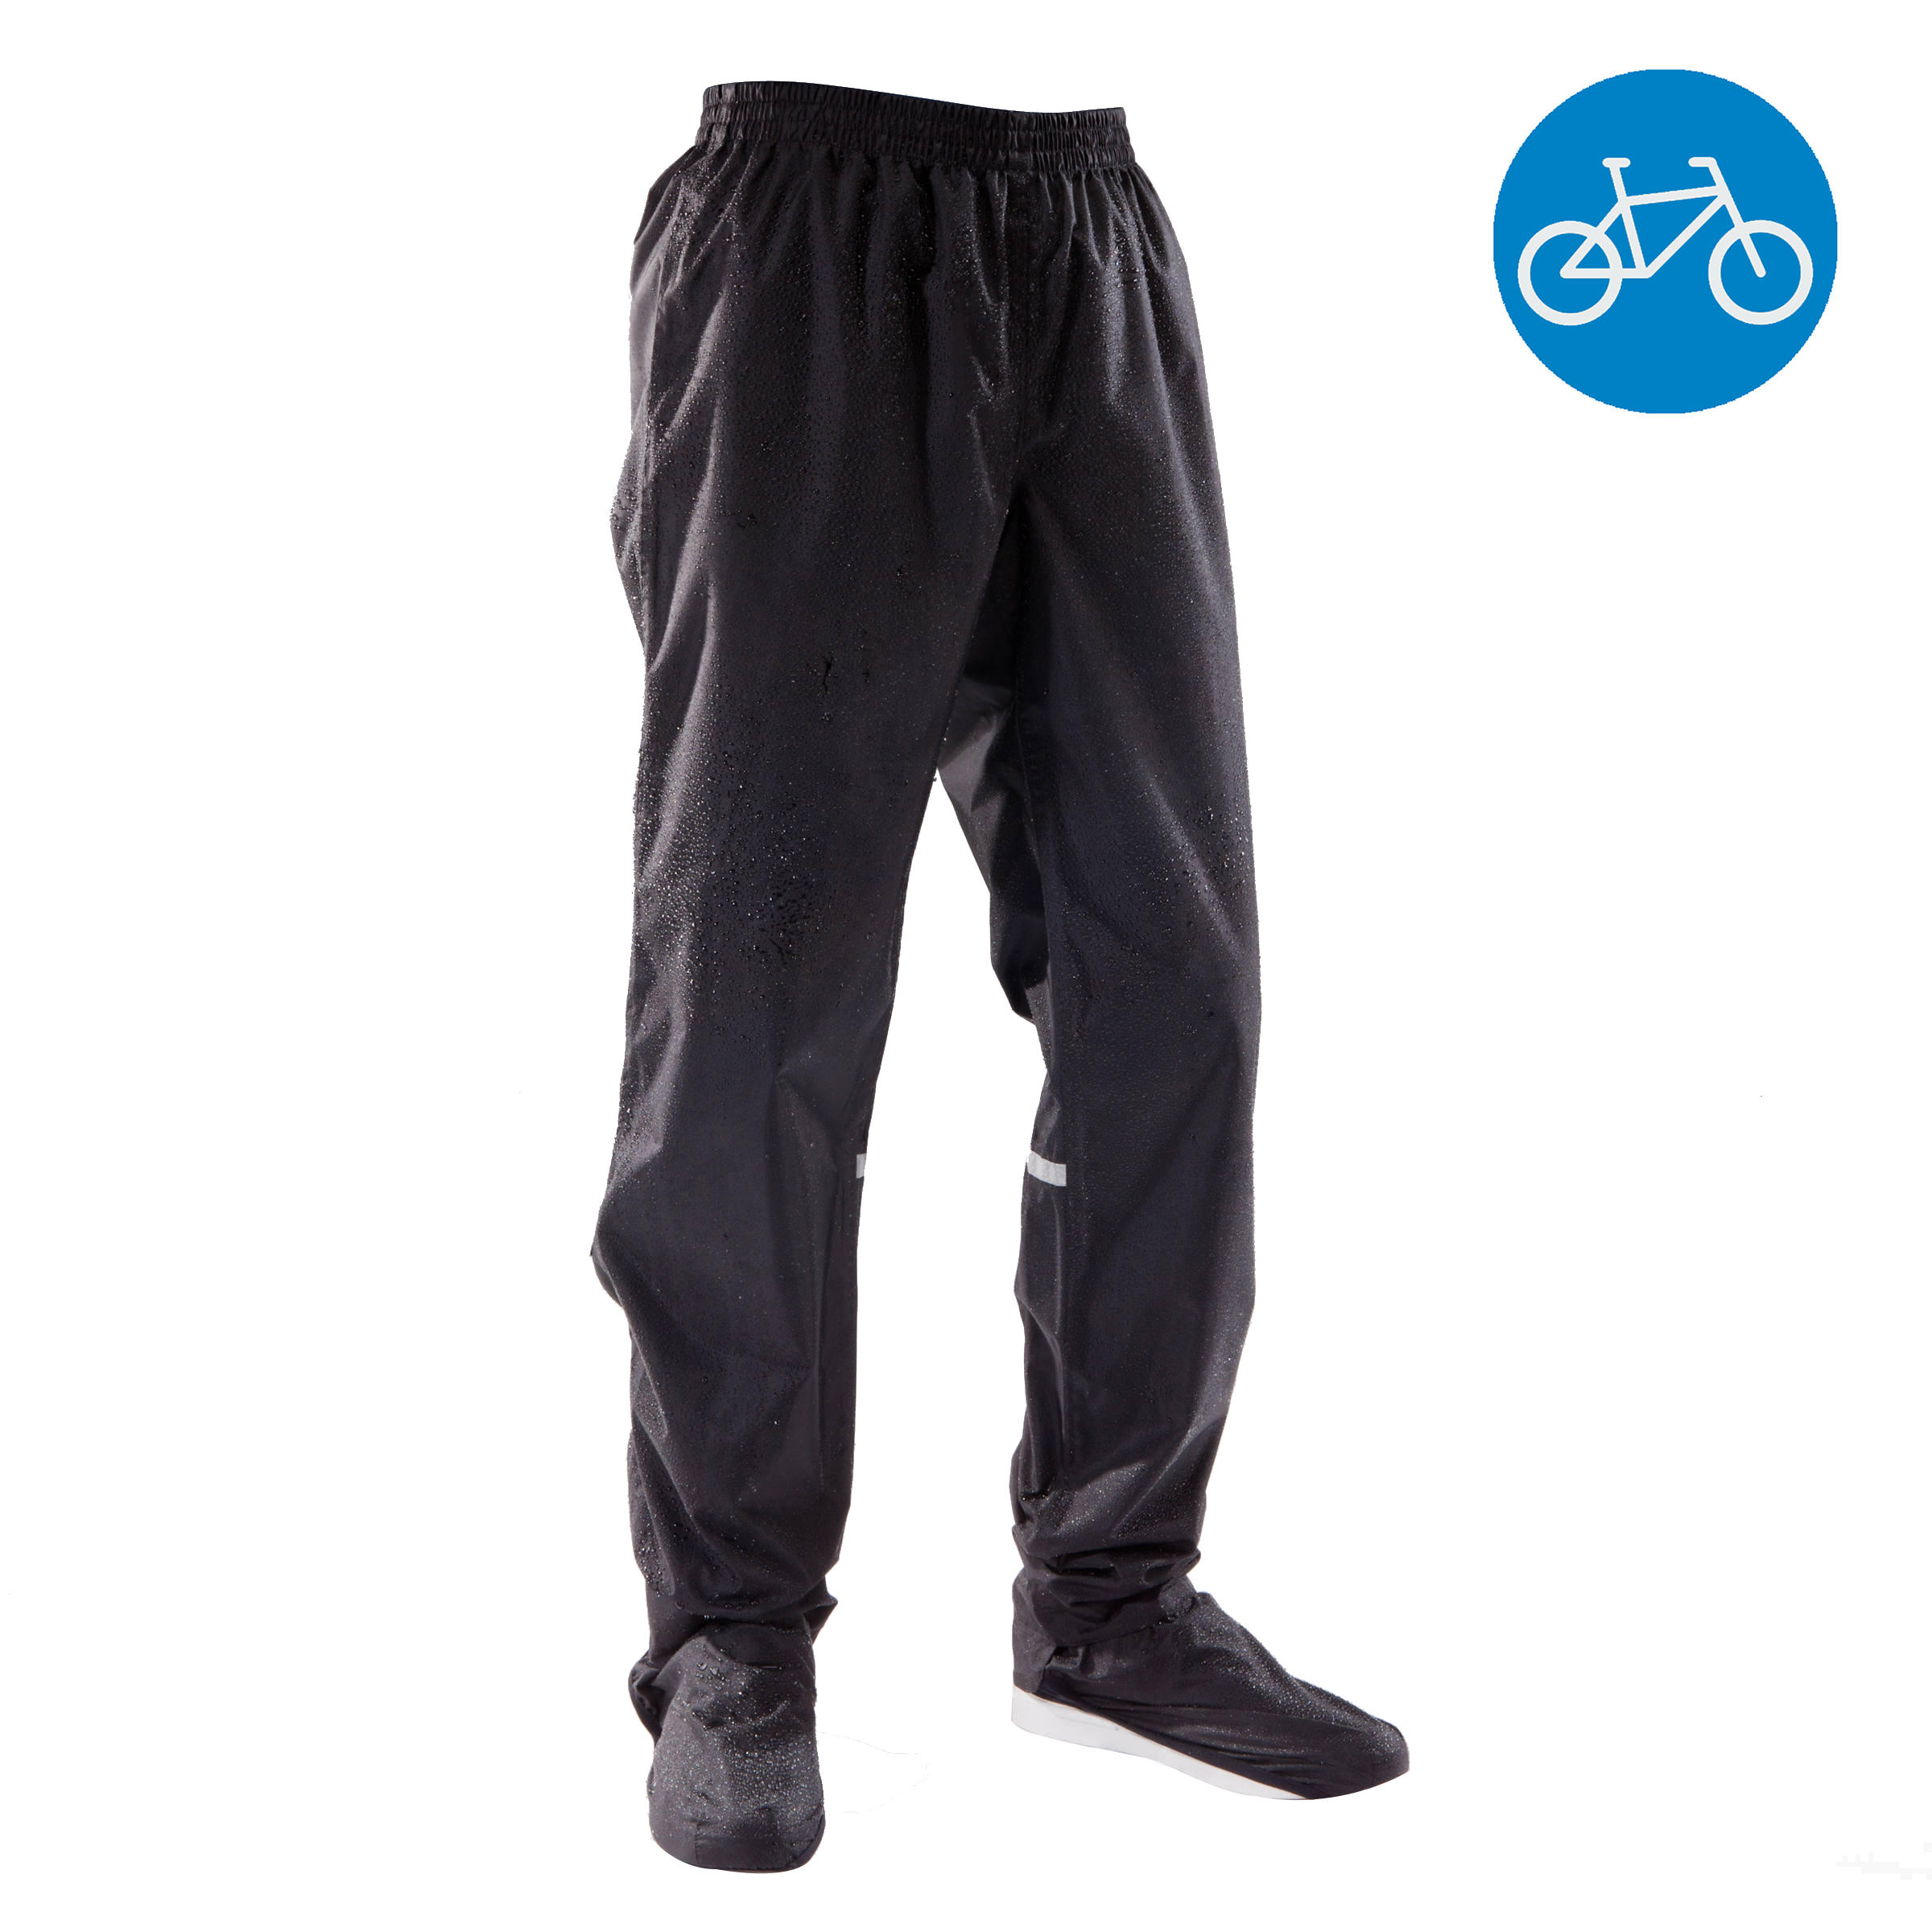 500 City Cycling Rain Top-Layer Pants - Black